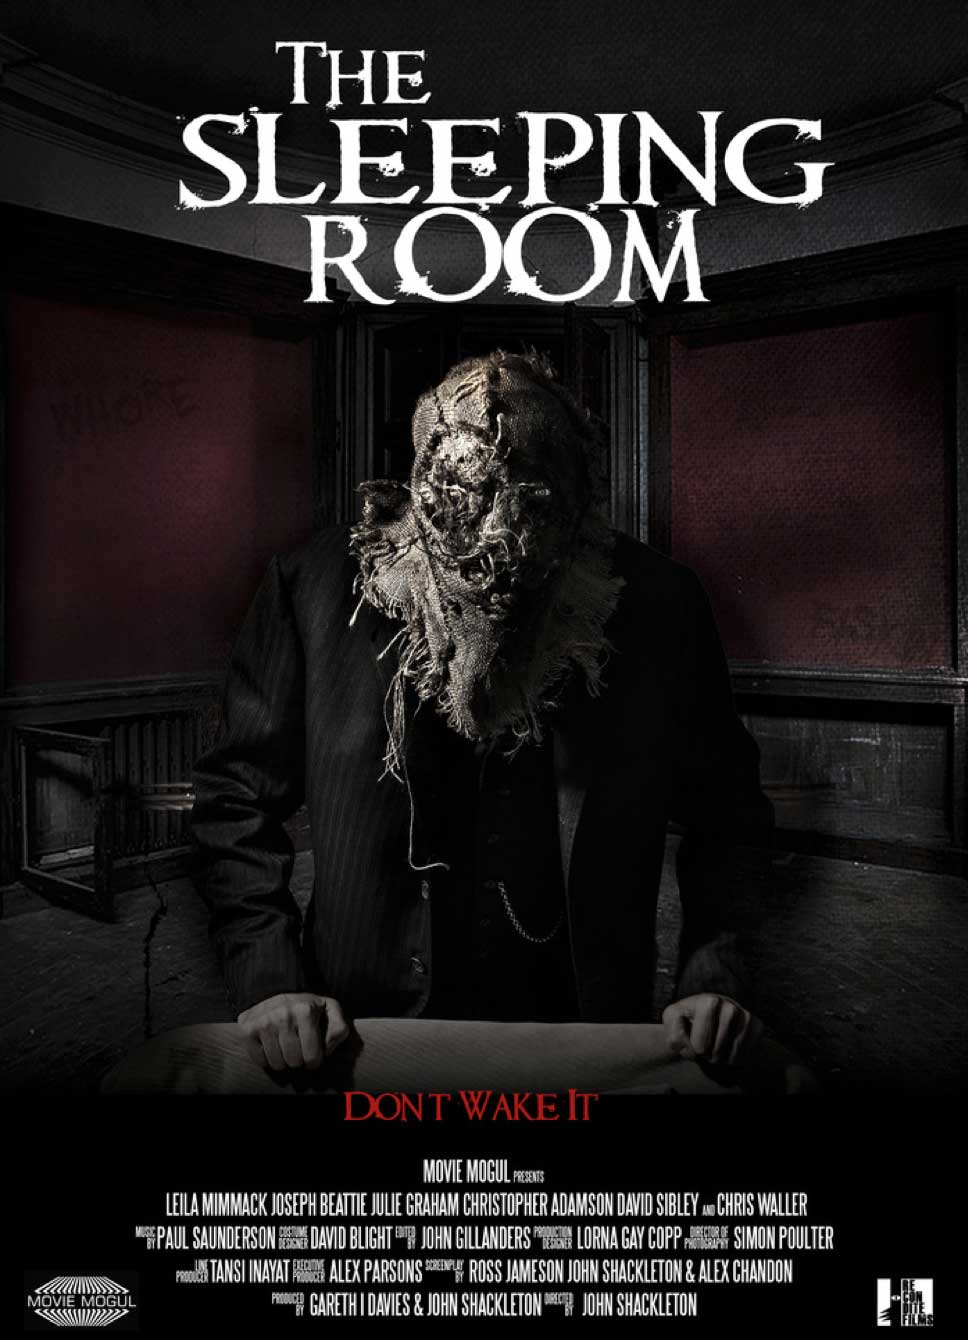 The Sleeping Room 2014 Trailer Poster